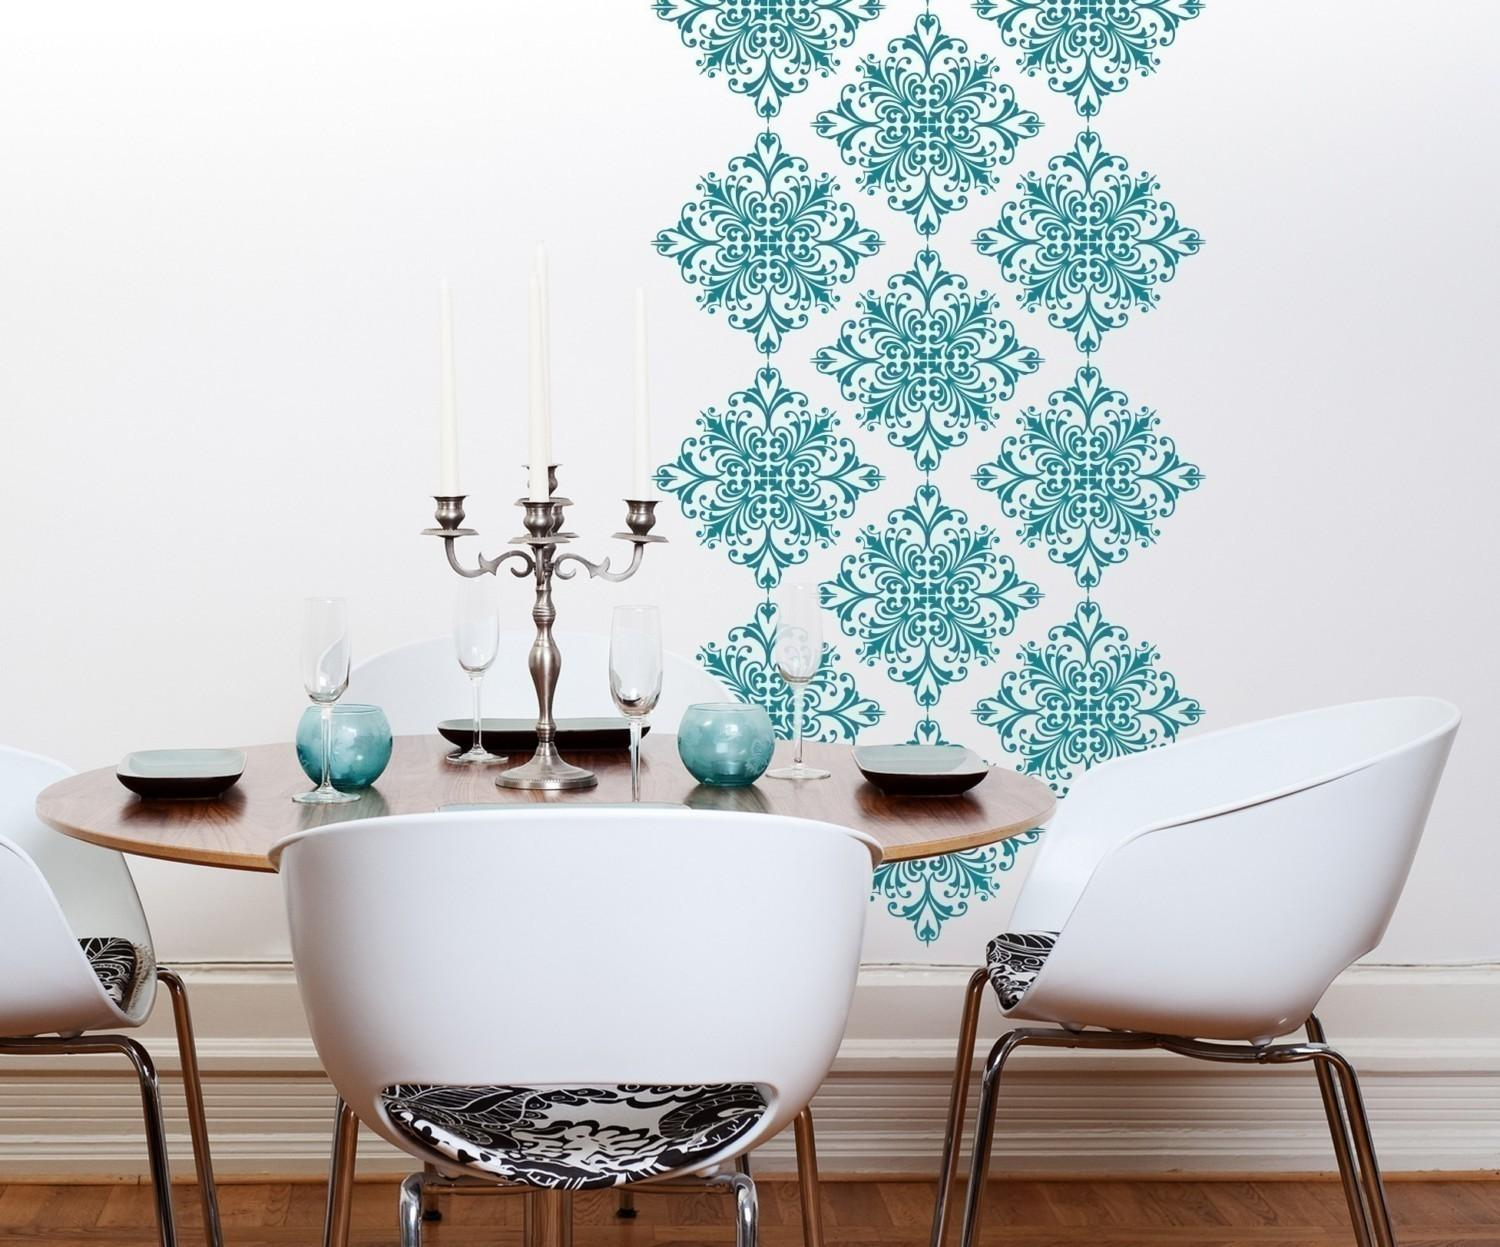 Vinyl Wall Decals Scroll Damask Pattern Graphics